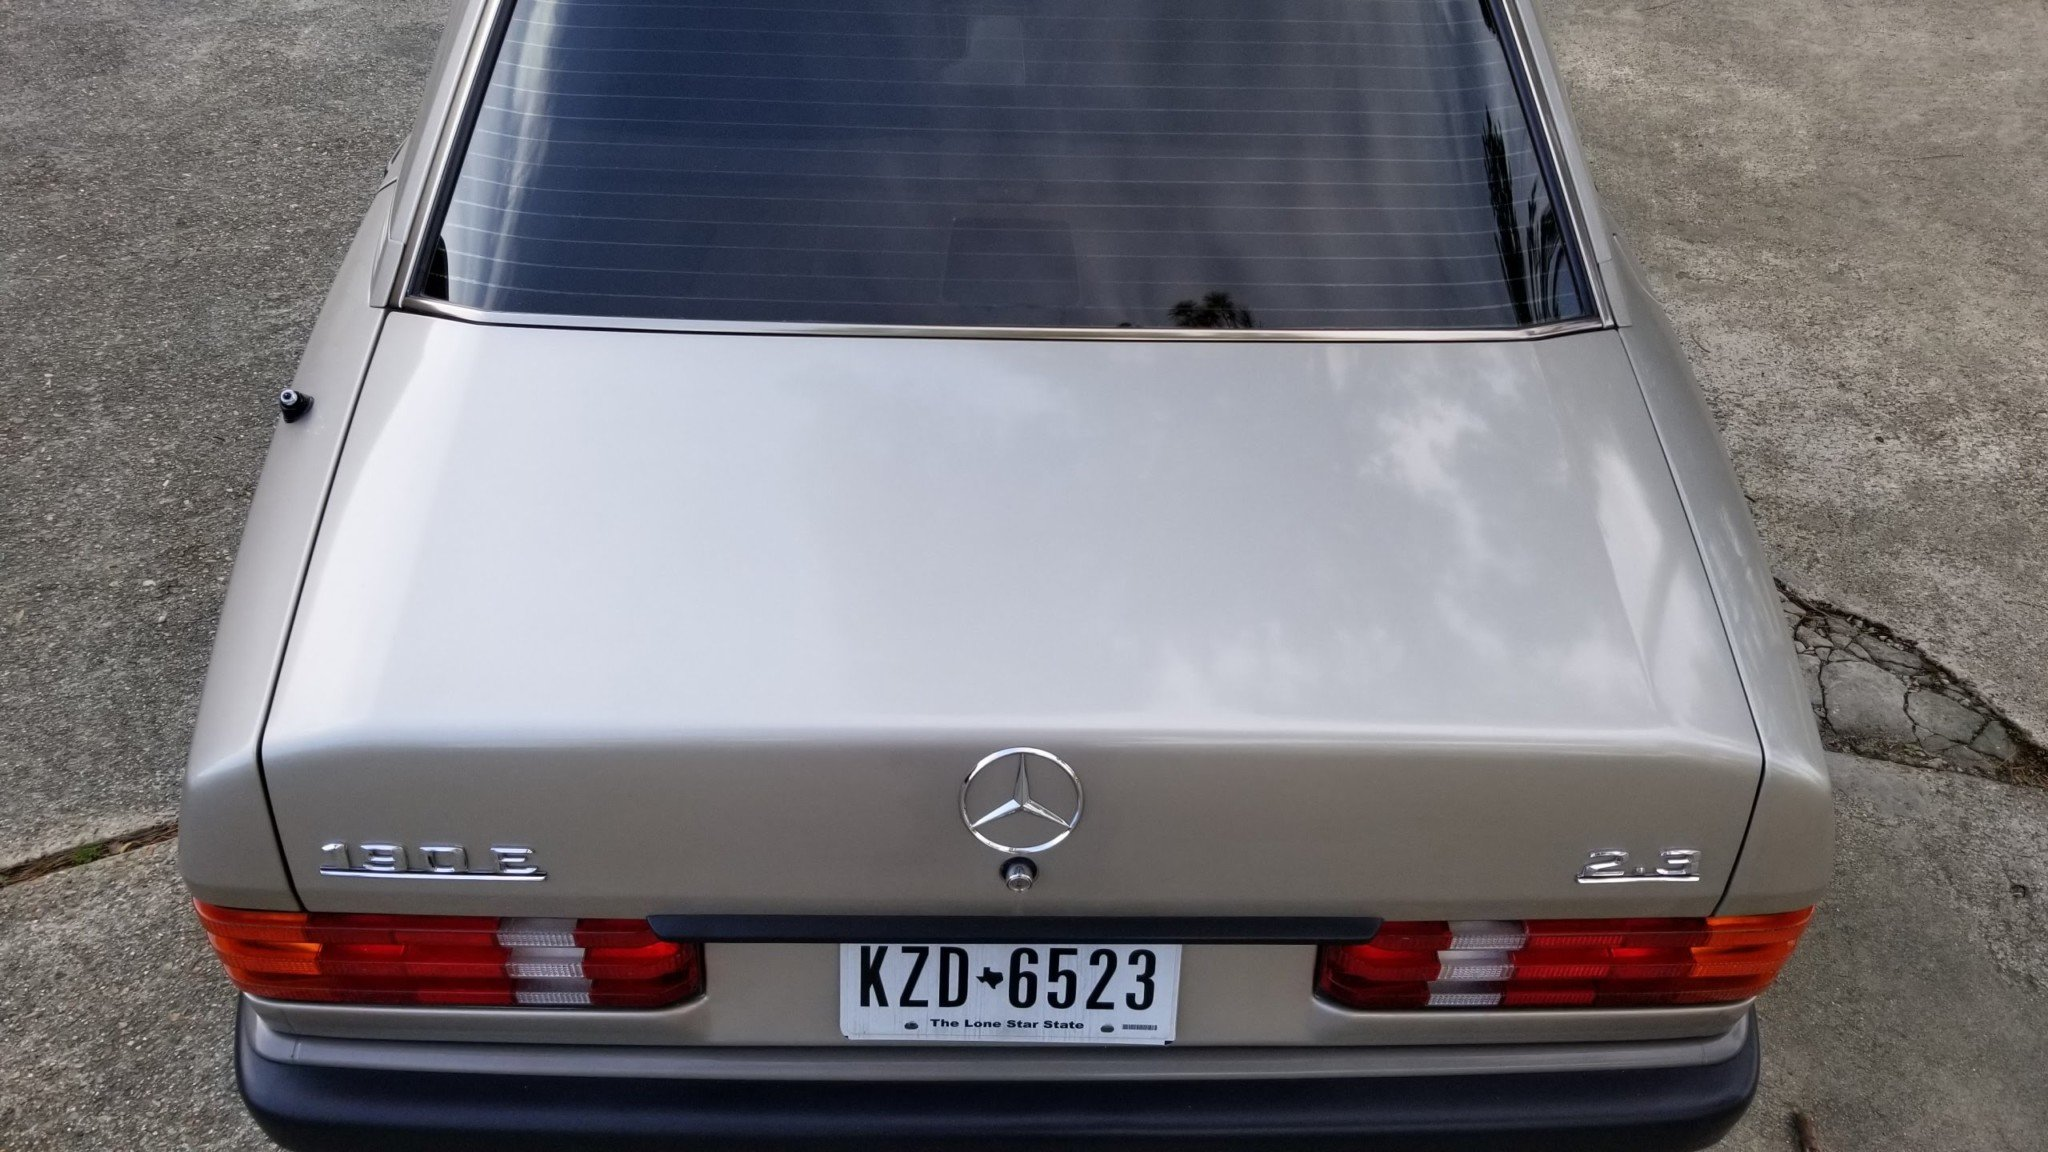 1993 Mercedes-Benz 190E 2.3 For Sale (picture 9 of 24)